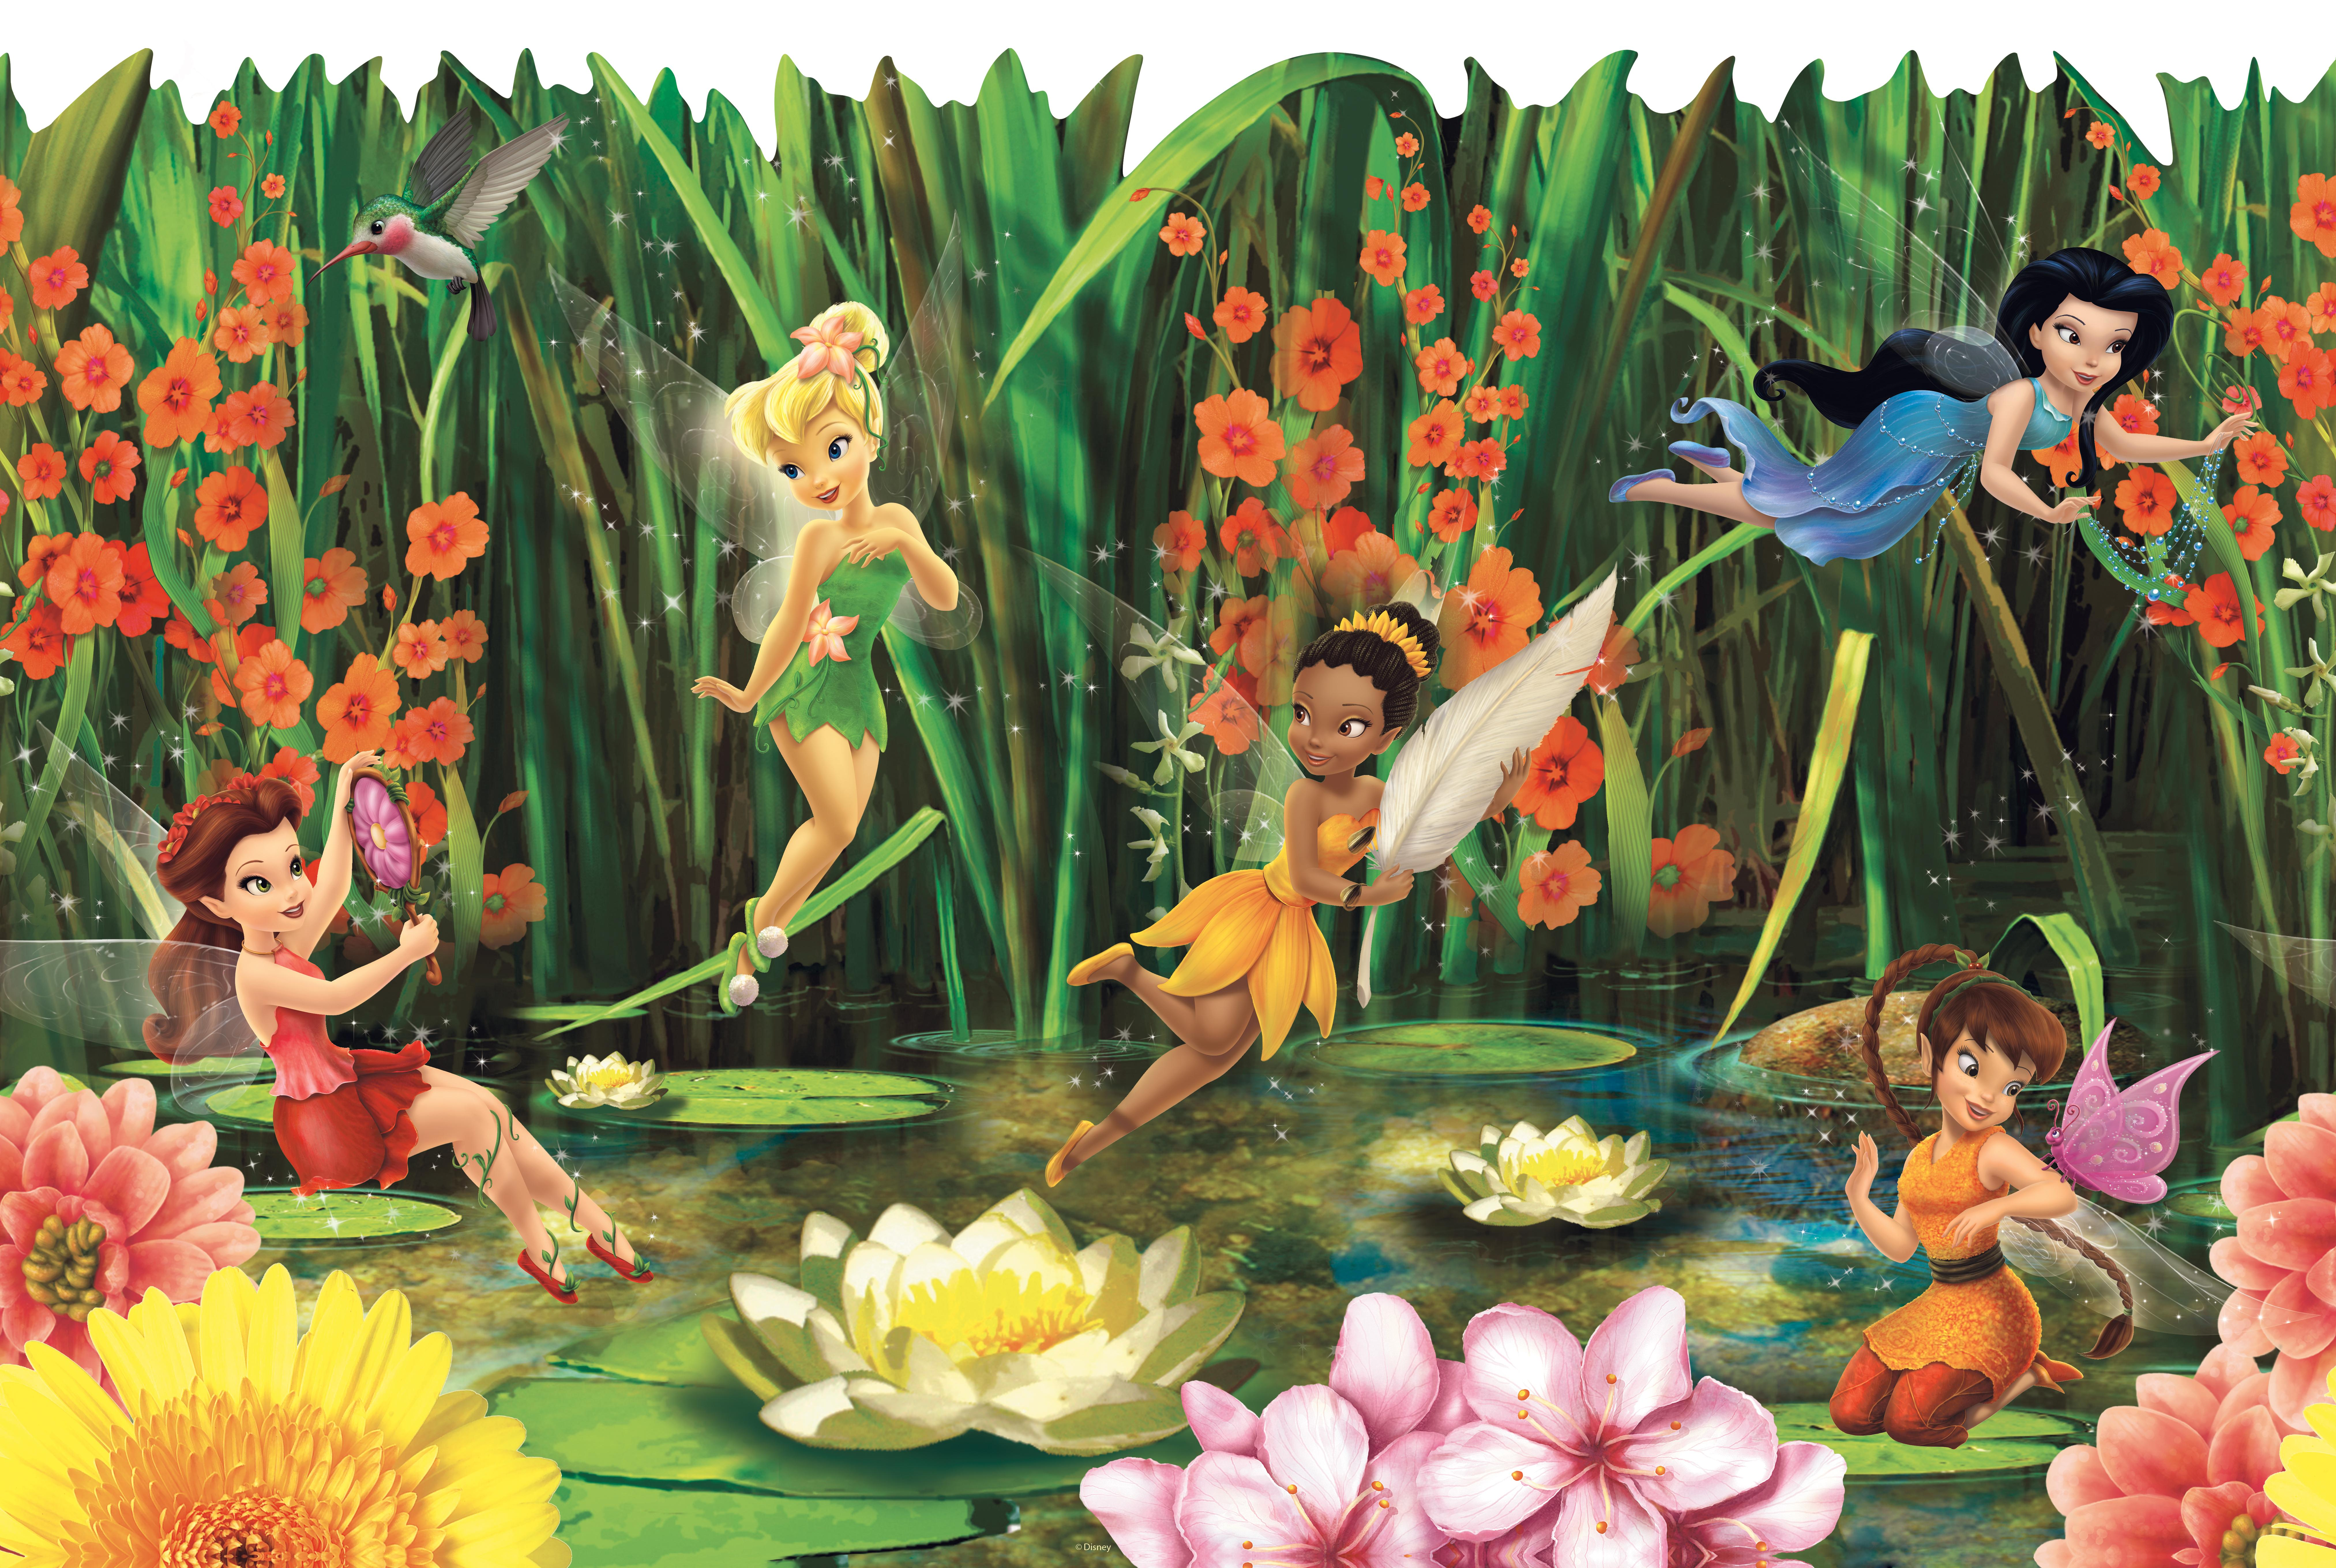 . Free download York Wallcovering Disney Fairies Fairies and Lilly